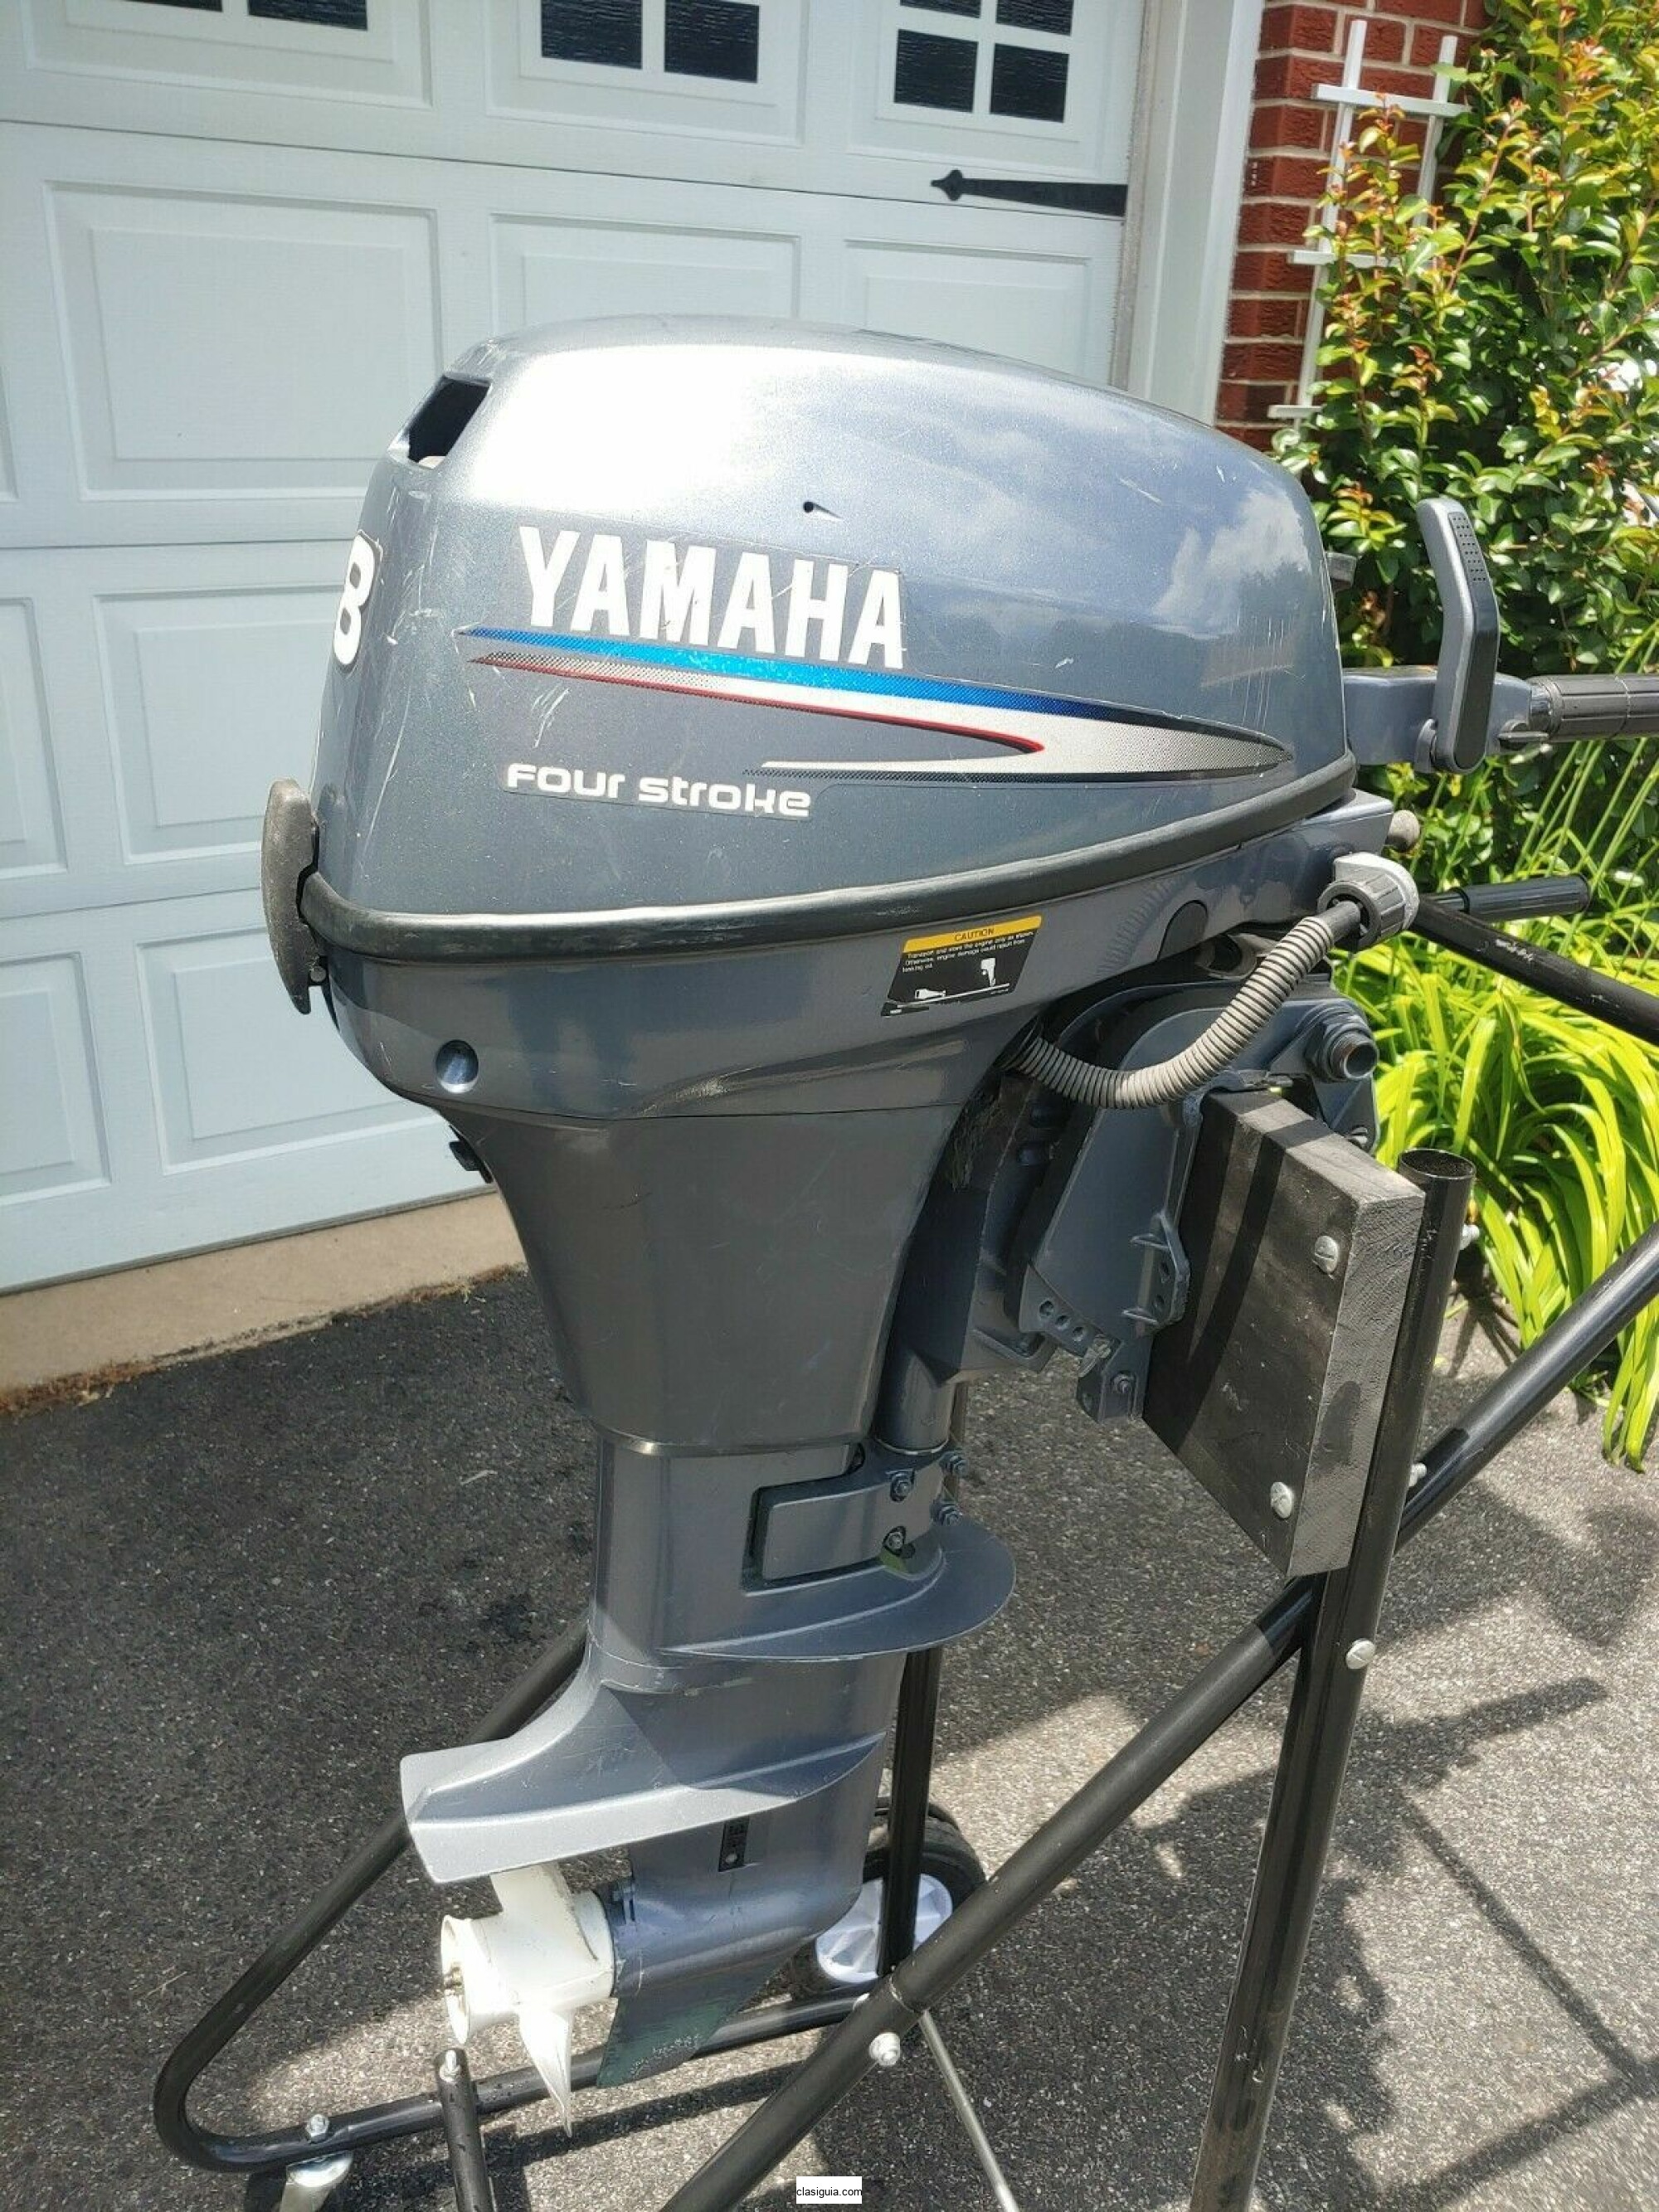 Yamaha outboard motor 8hp 4 stroke Low Hours Well maintained Excellent Condition